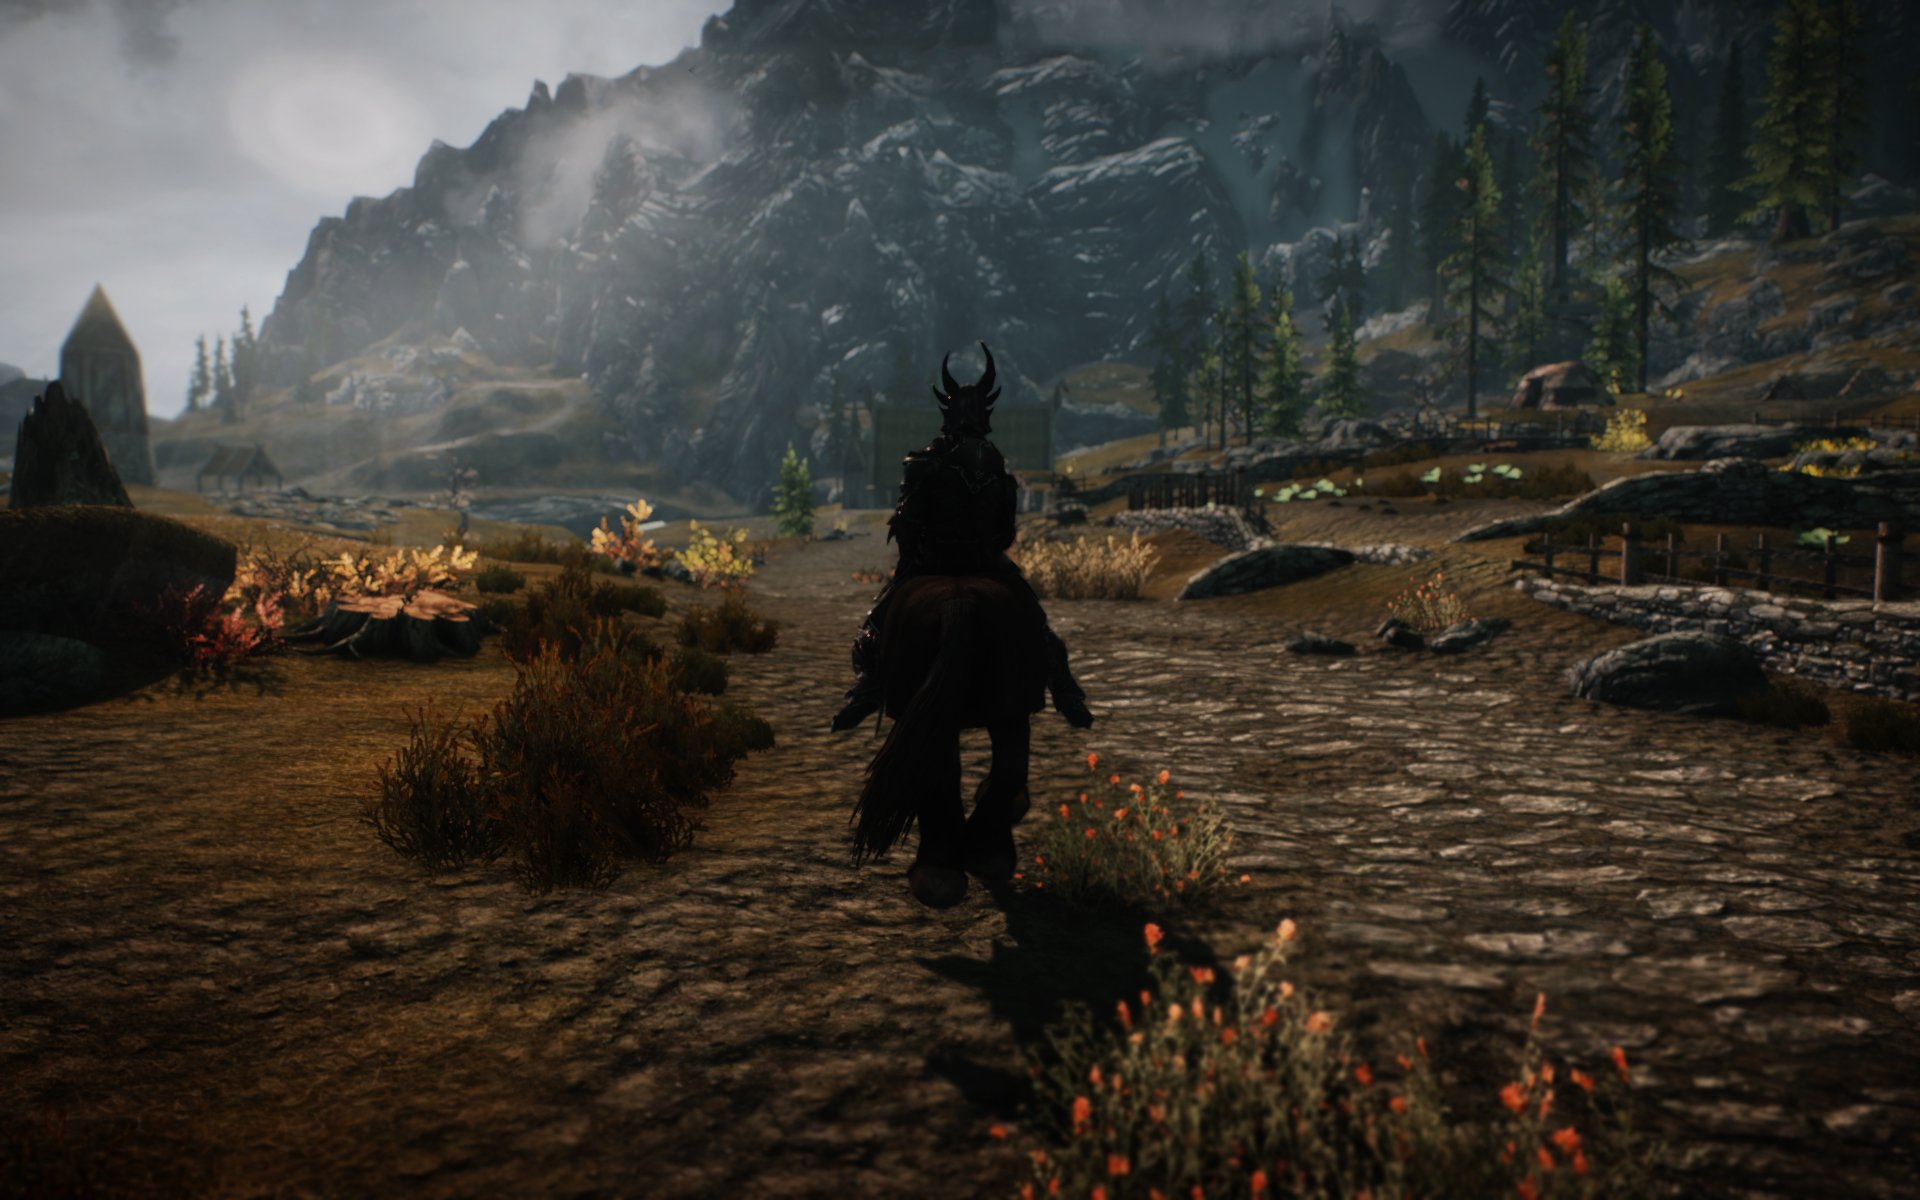 Skyrim The Beautiful Scenery 1 by Scorched3arth on deviantART 1920x1200